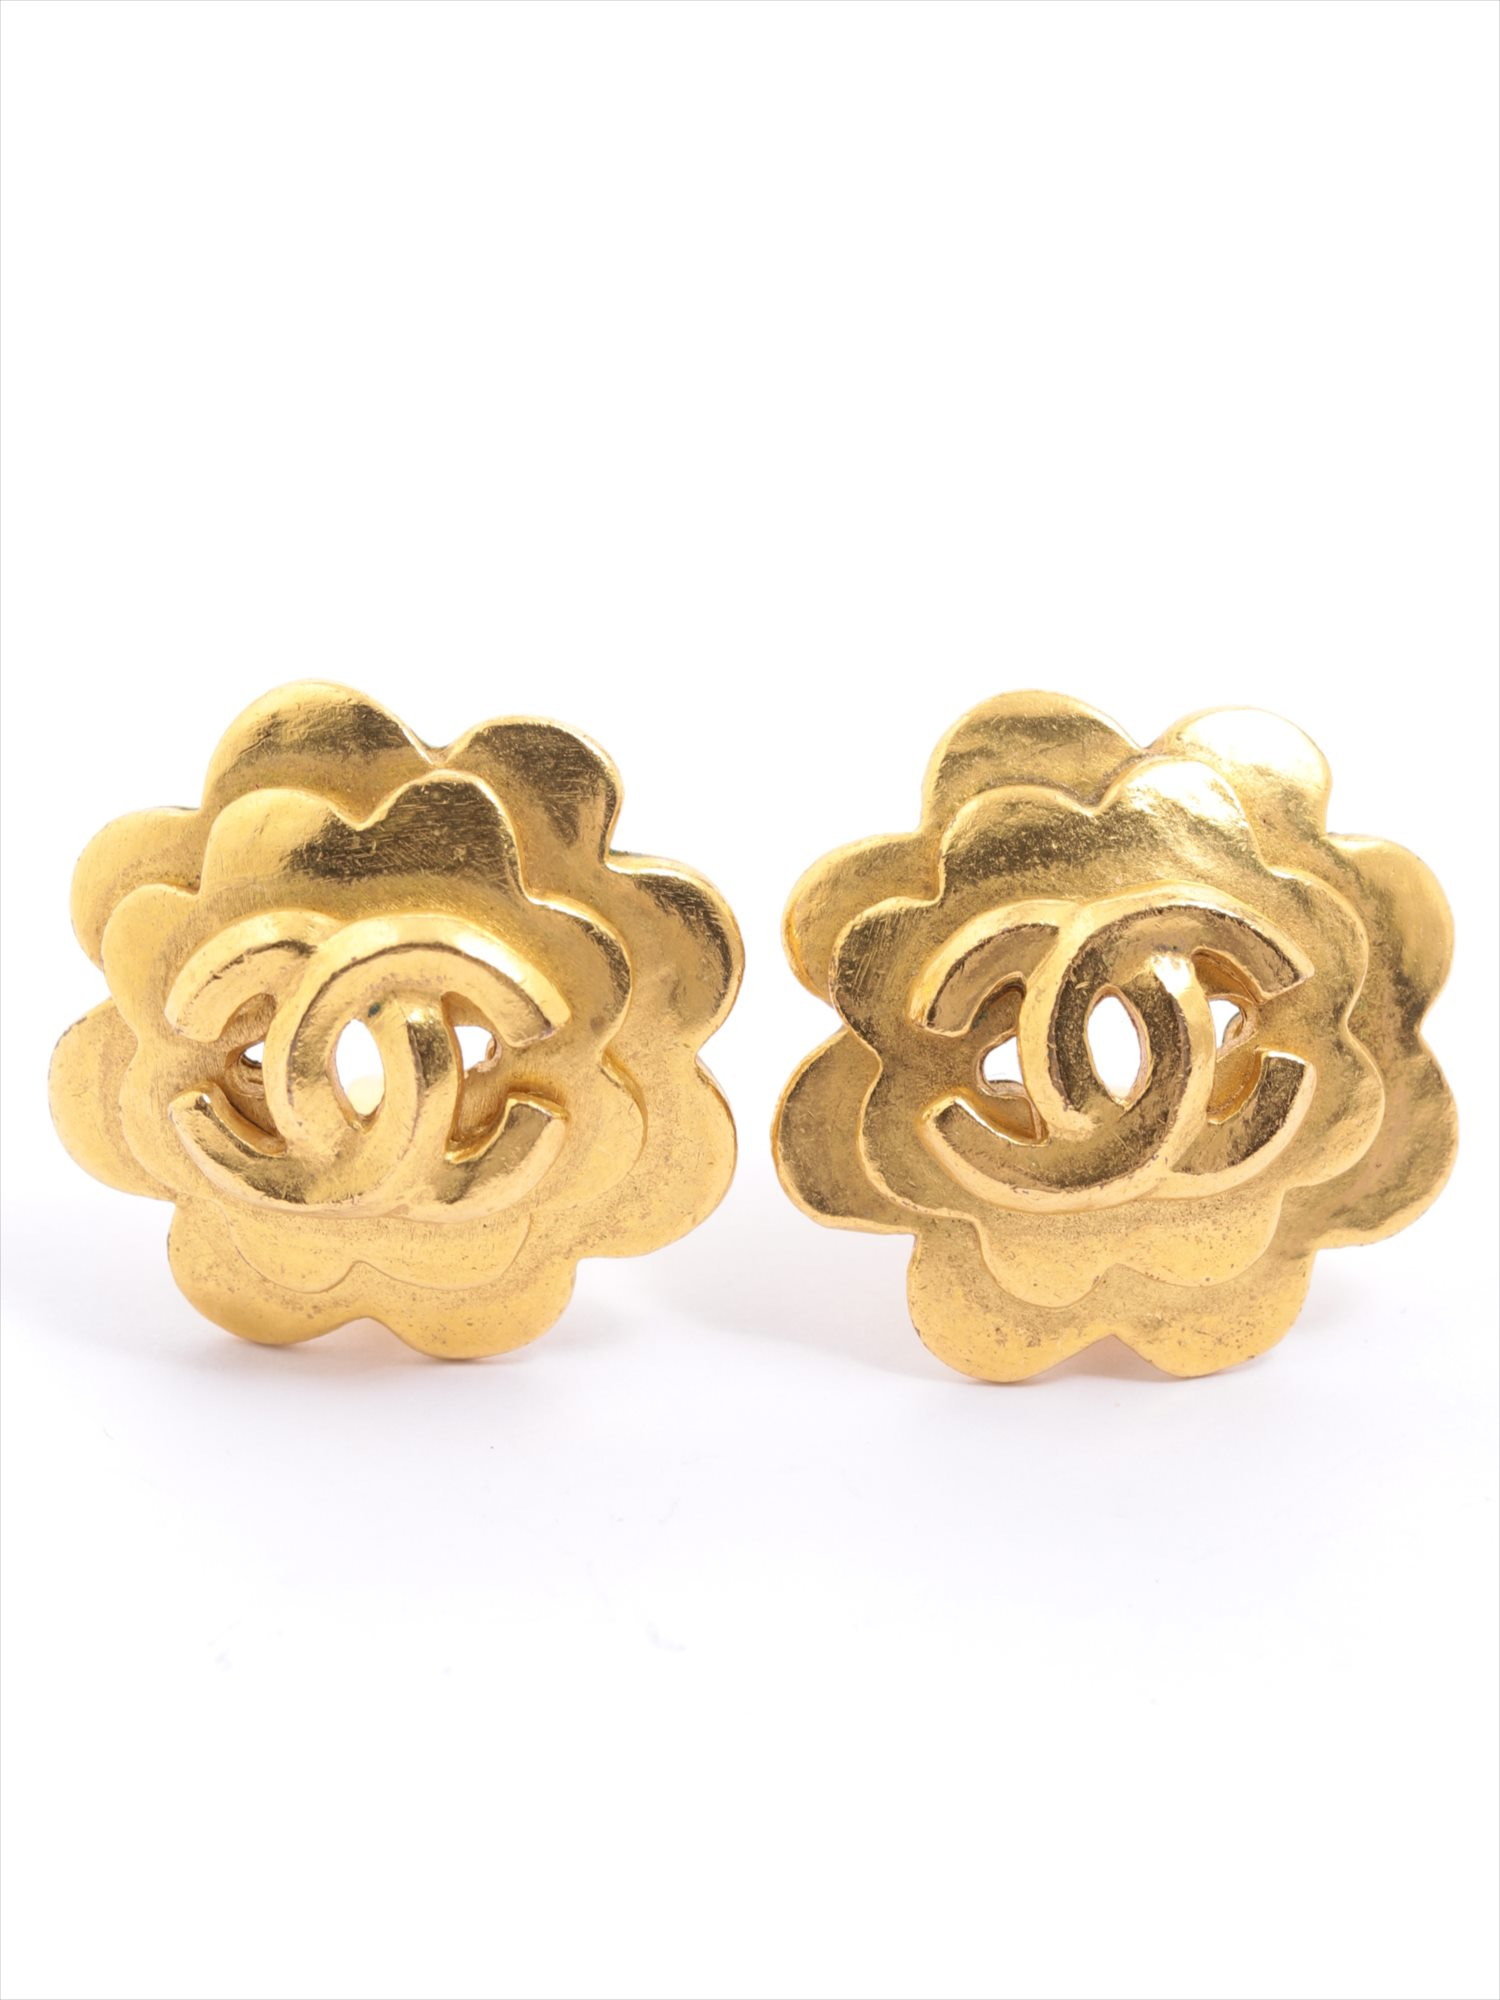 [Used goods] Chanel Coco mark earrings (both for the ear) GP Gold 96P